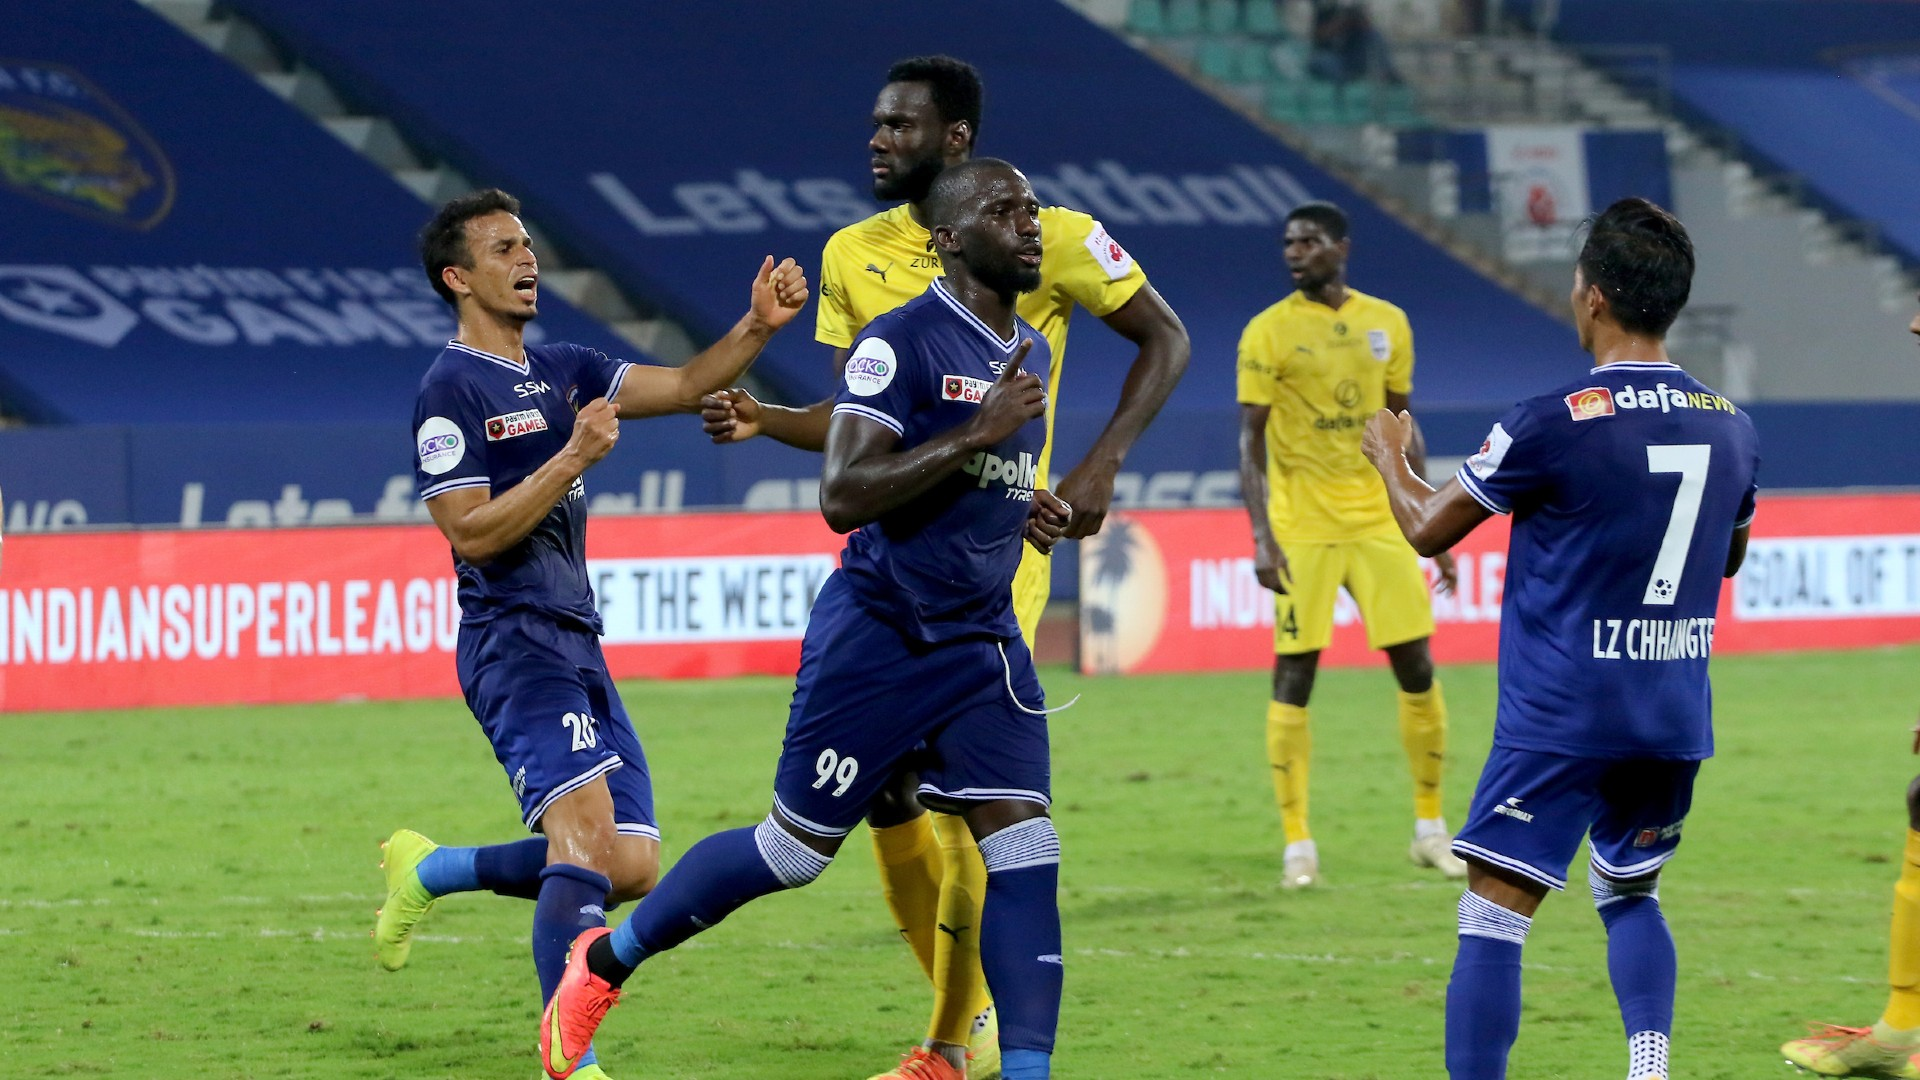 'Ahmed Jahouh's gift cost us two points' - Mumbai City boss Sergio Lobera demands improvement from the midfielder